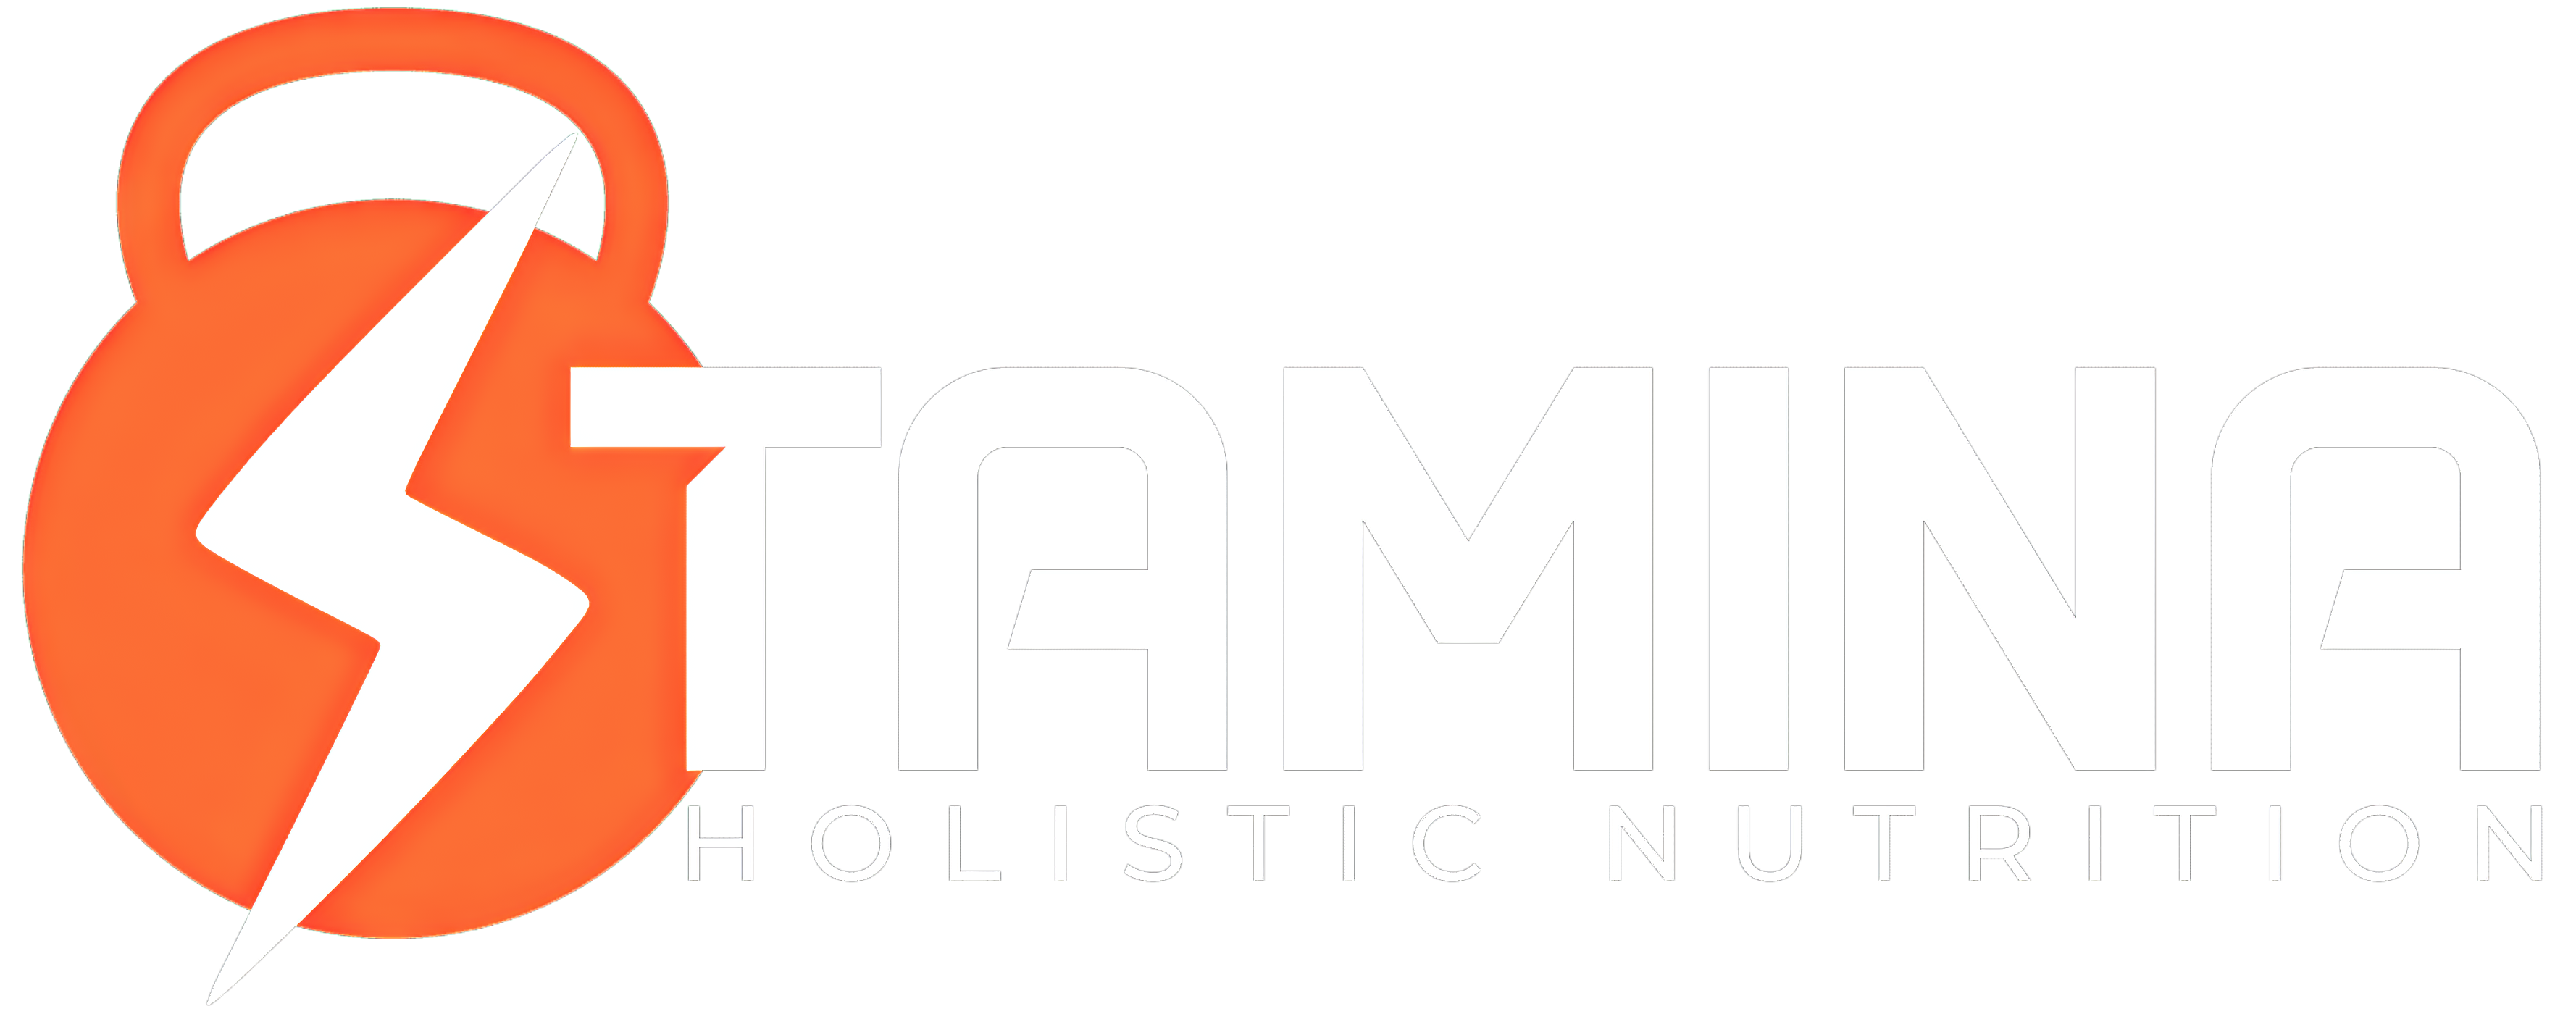 Stamina Holistic Nutrition